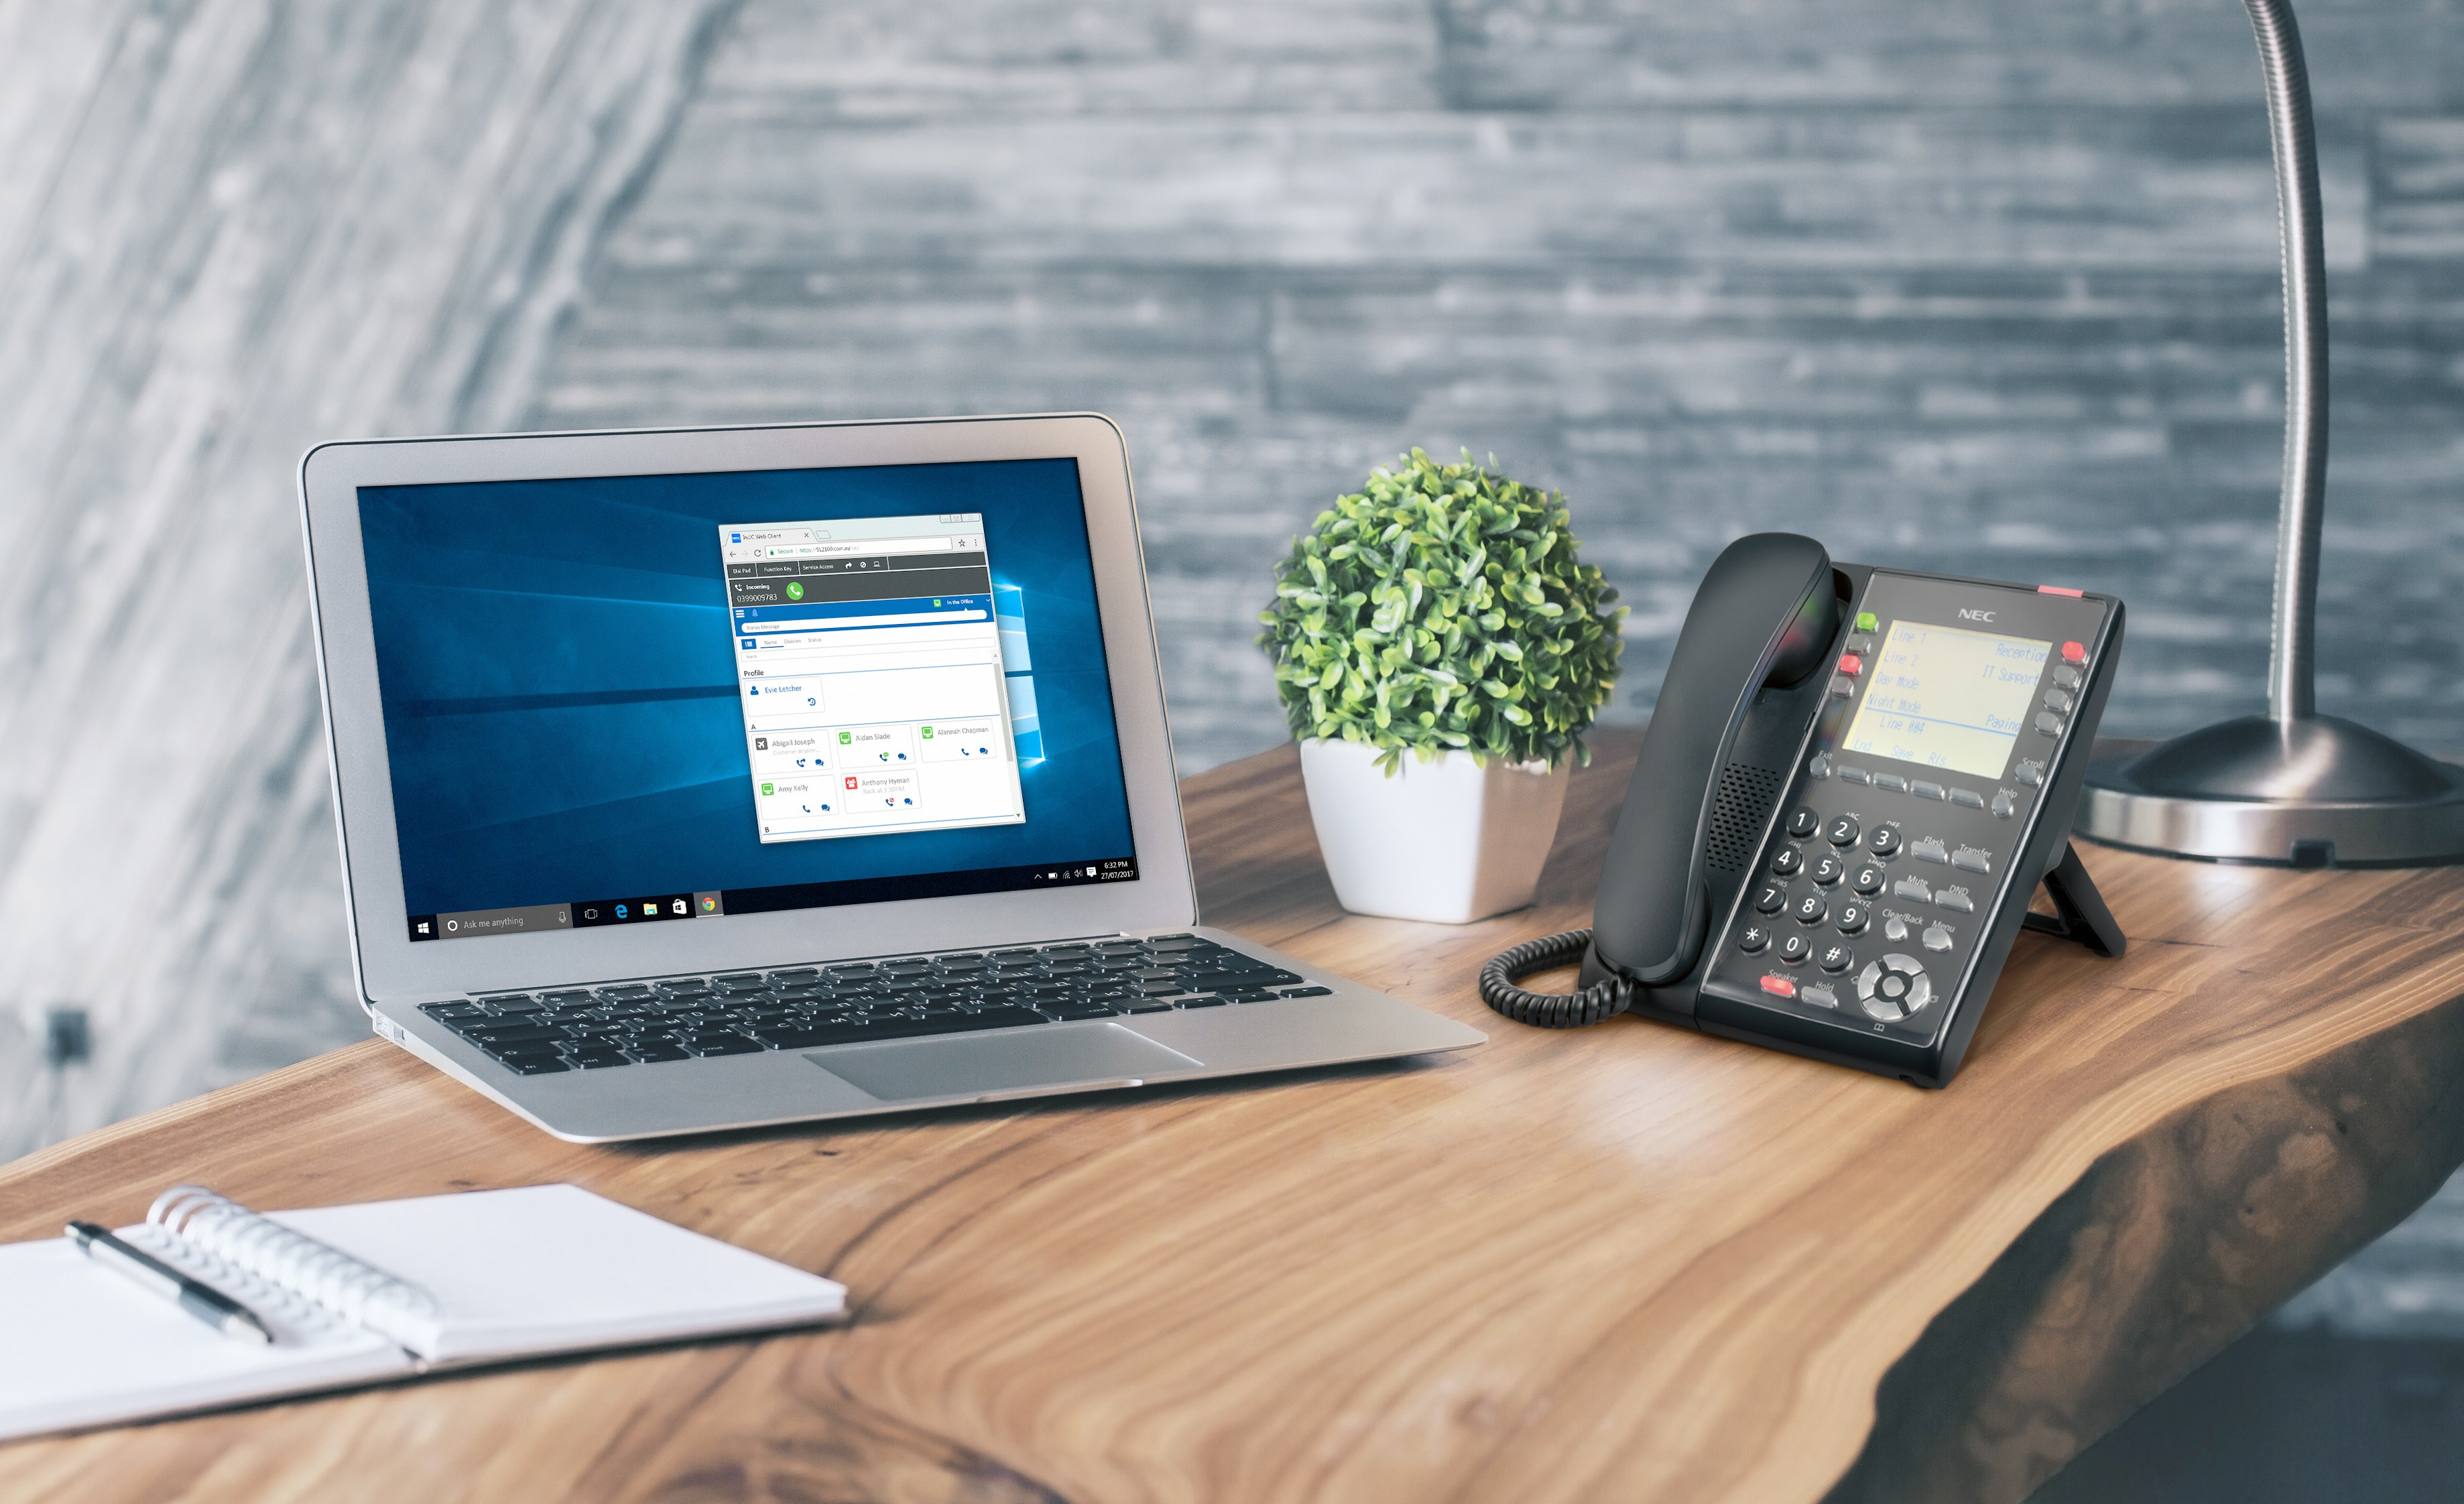 NEC telephone systems support sl2100